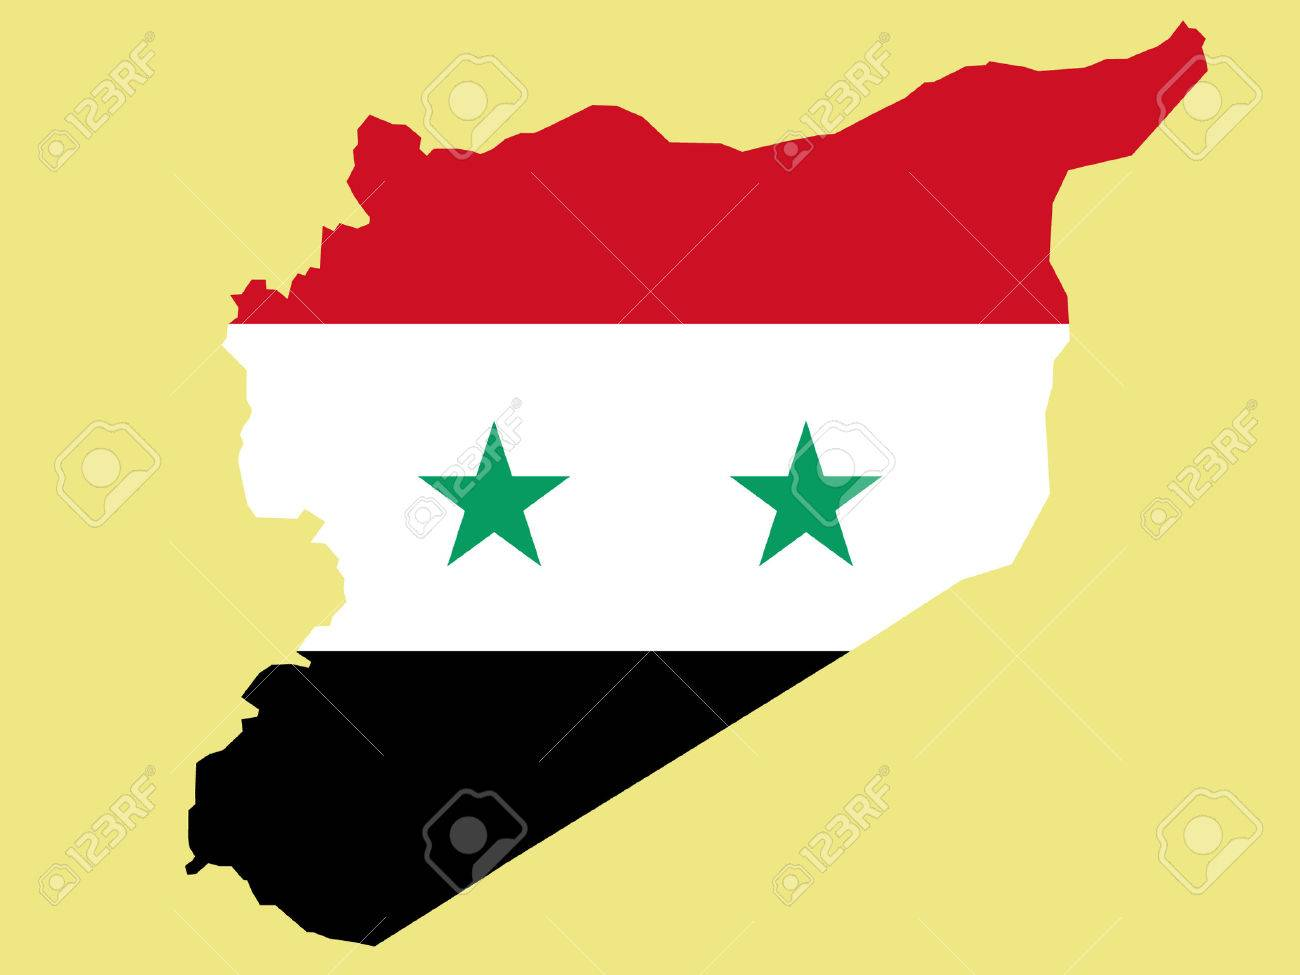 map of syria and syrian flag illustration Stock Vector - 725722